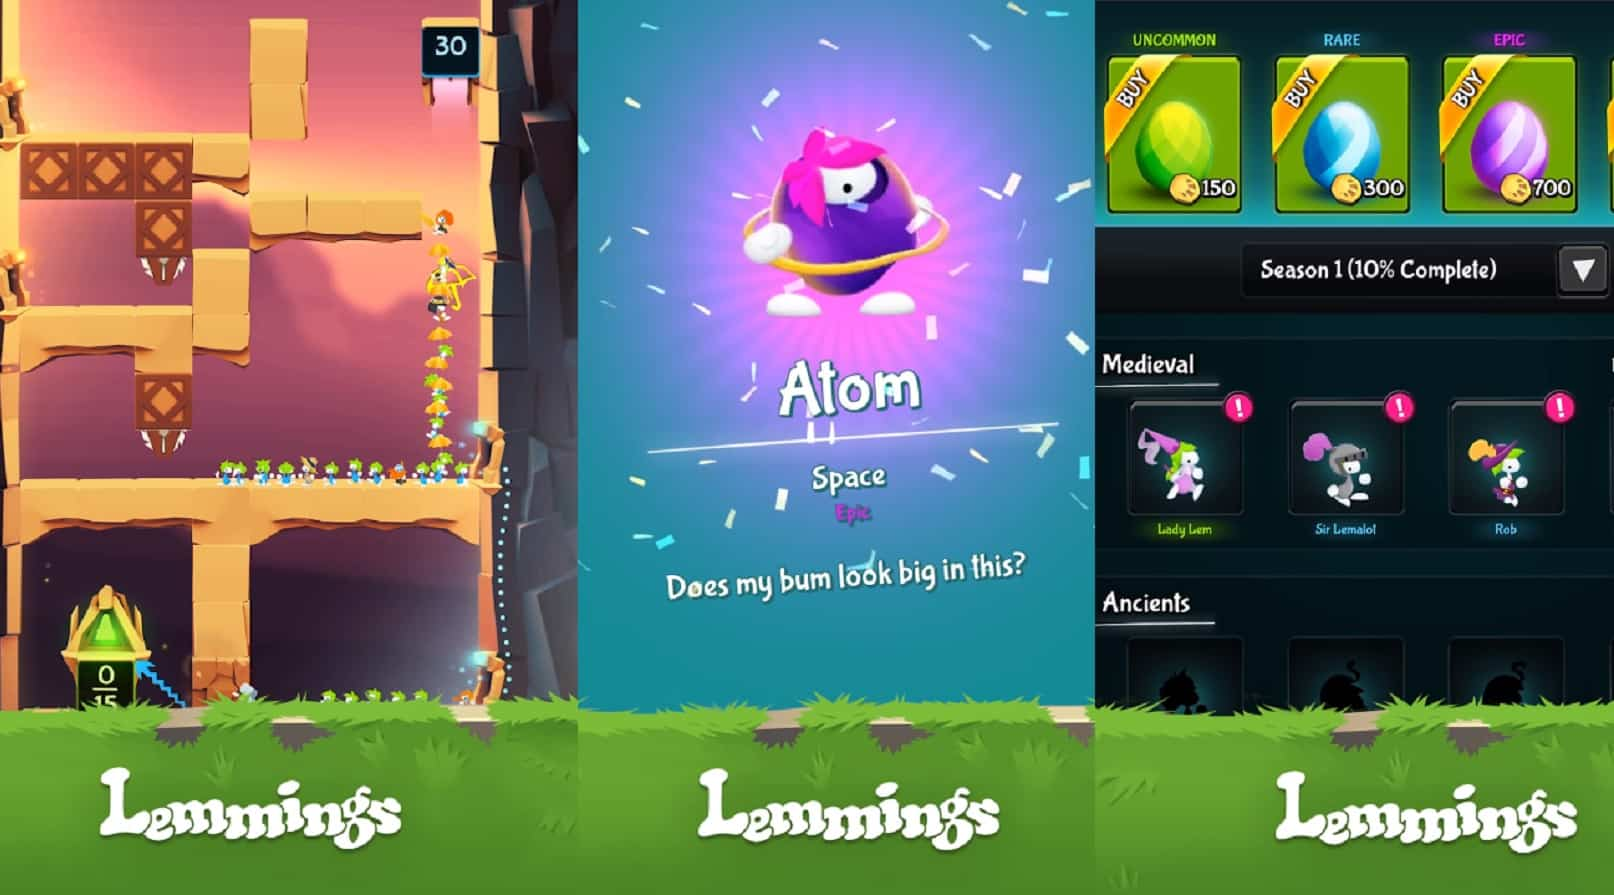 lemmings game screenshots on ios and android